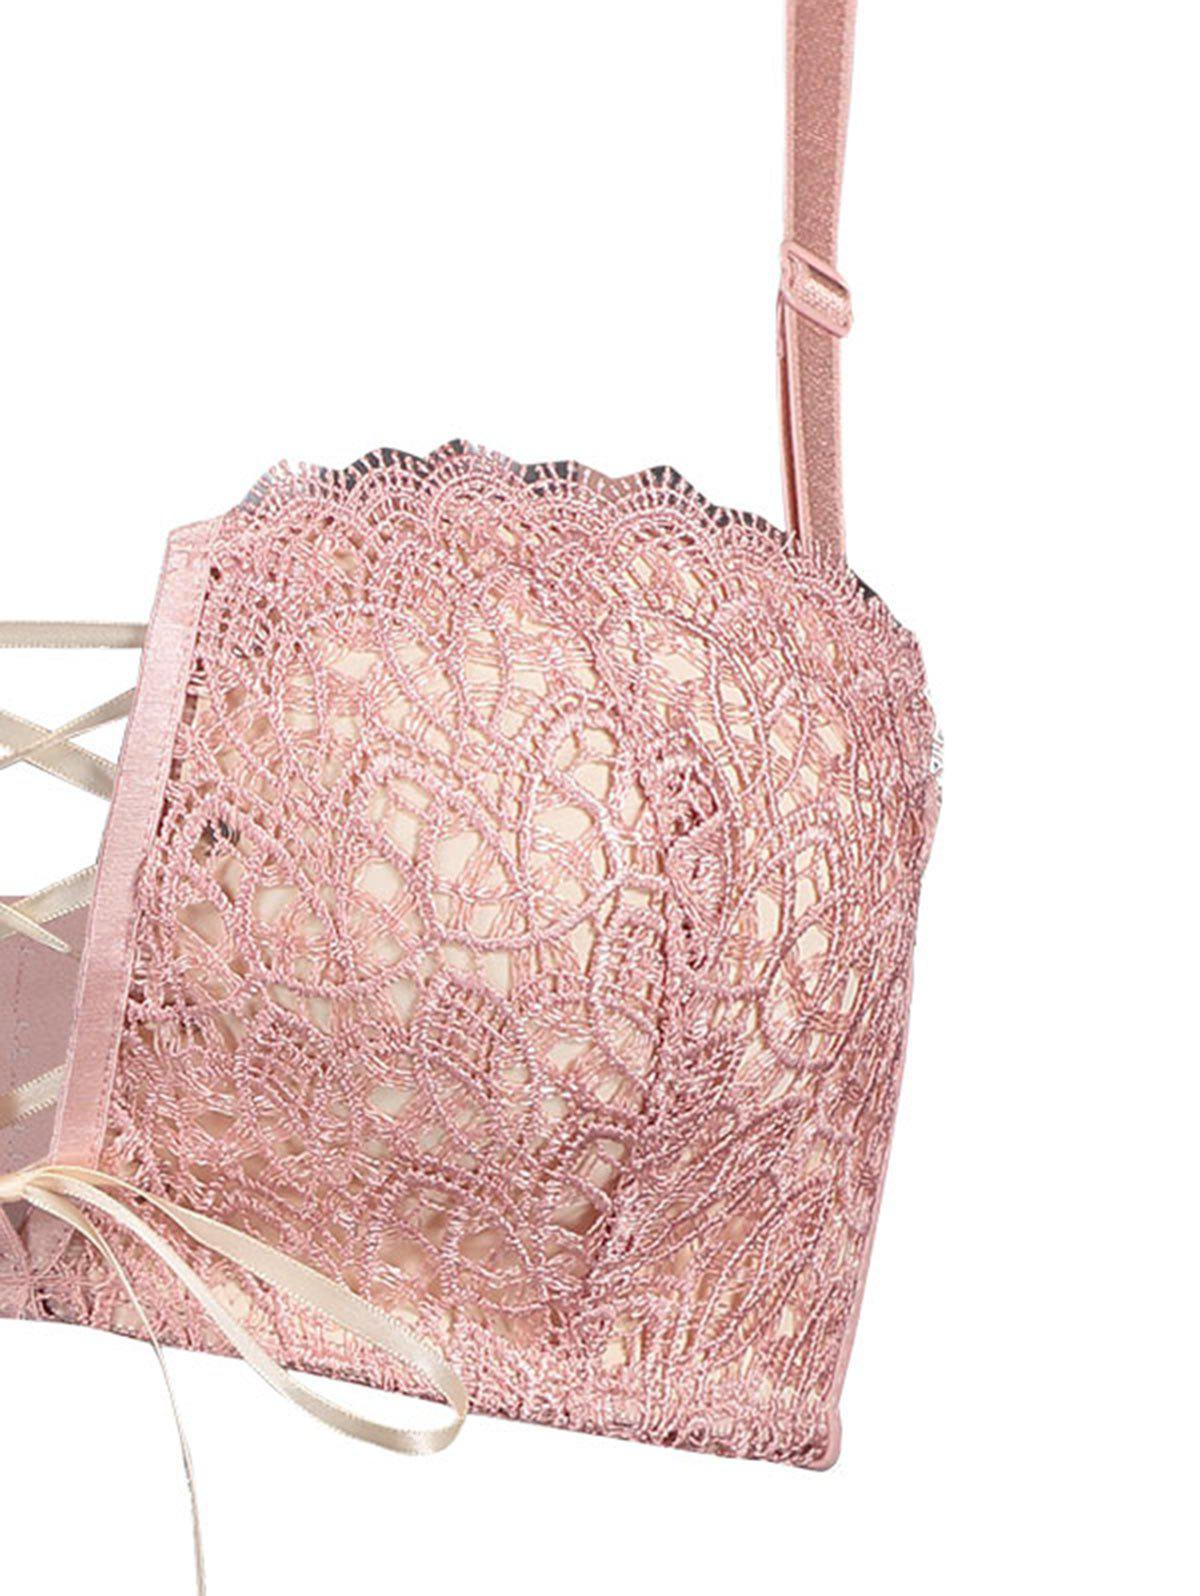 Padded Lace Bra with Lace-up Detail - LIGHT PINK 80A